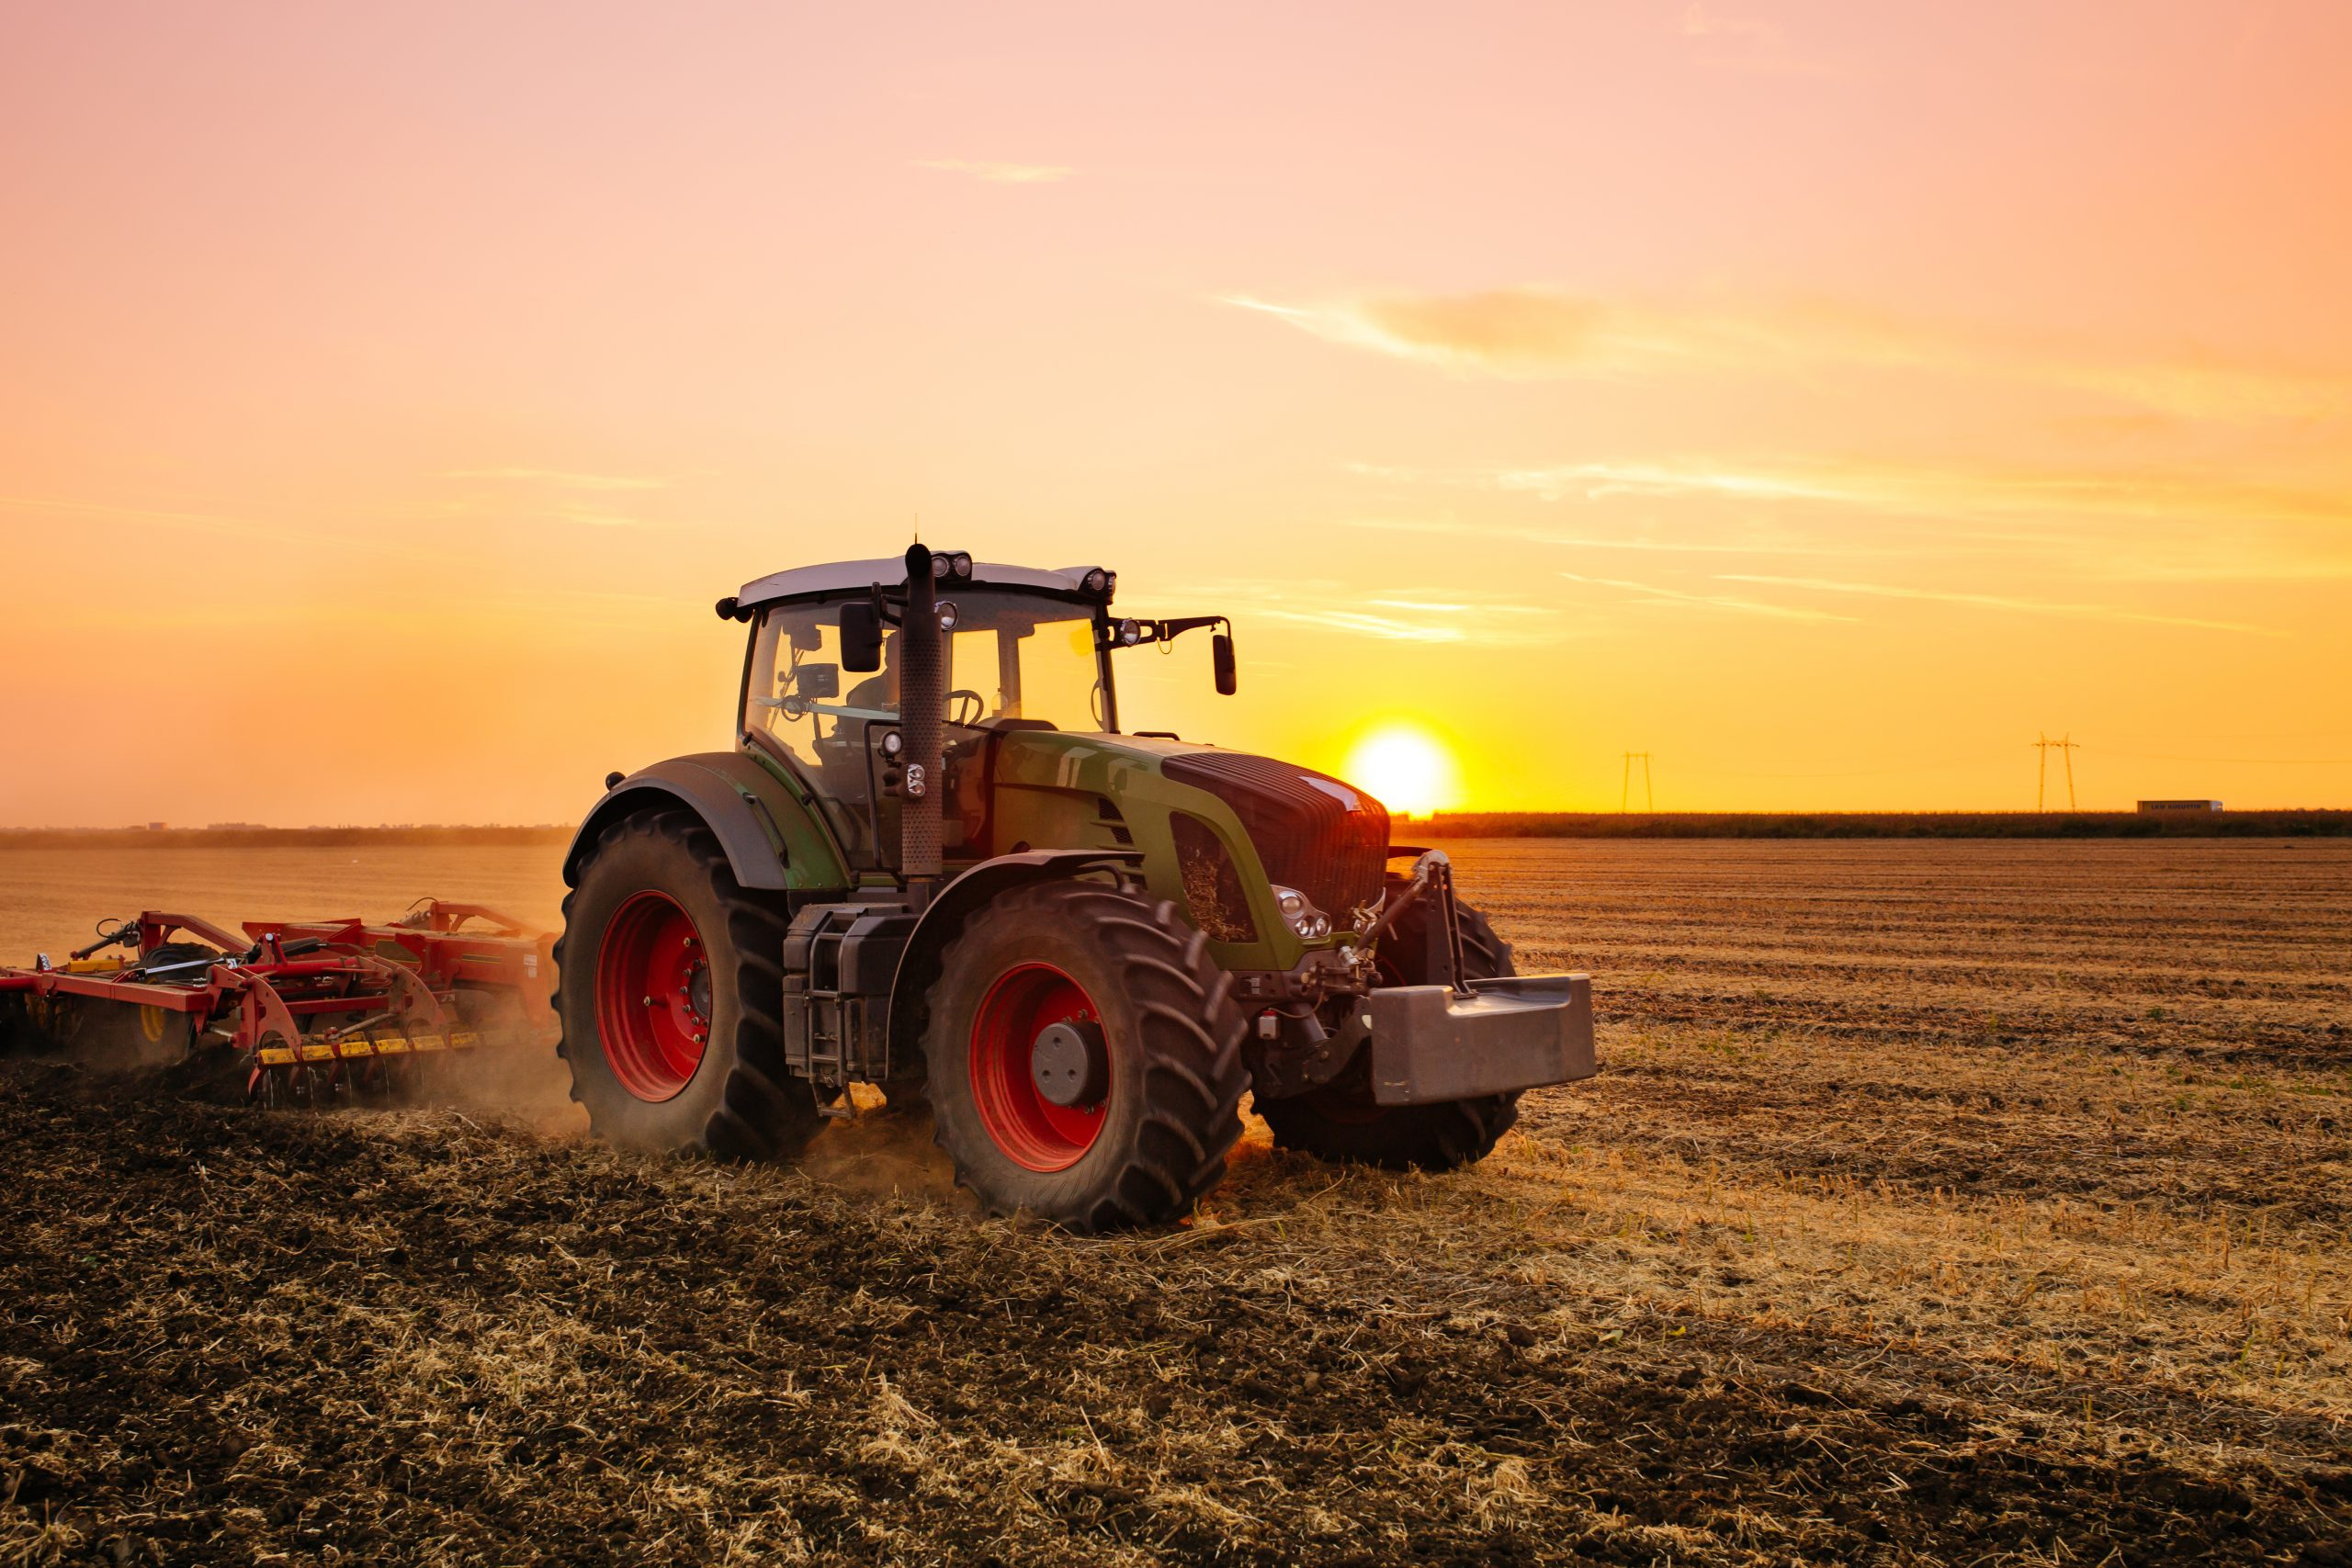 Tractor tilling a field at sunset